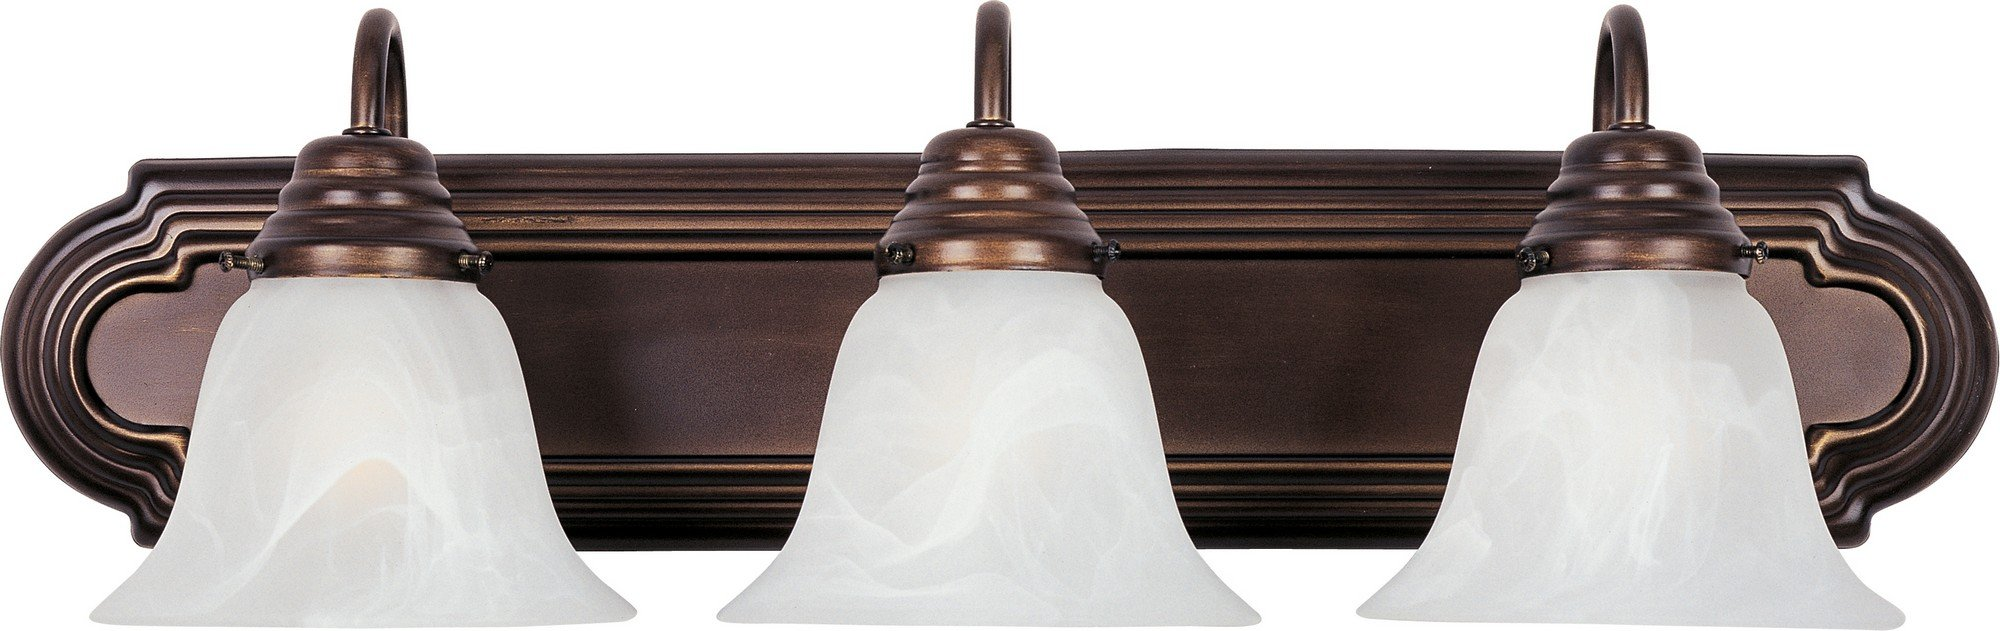 Maxim 8013MROI Essentials 3-Light Bath Vanity, Oil Rubbed Bronze Finish, Marble Glass, MB Incandescent Incandescent Bulb , 60W Max., Dry Safety Rating, Standard Dimmable, Metal Shade Material, Rated Lumens